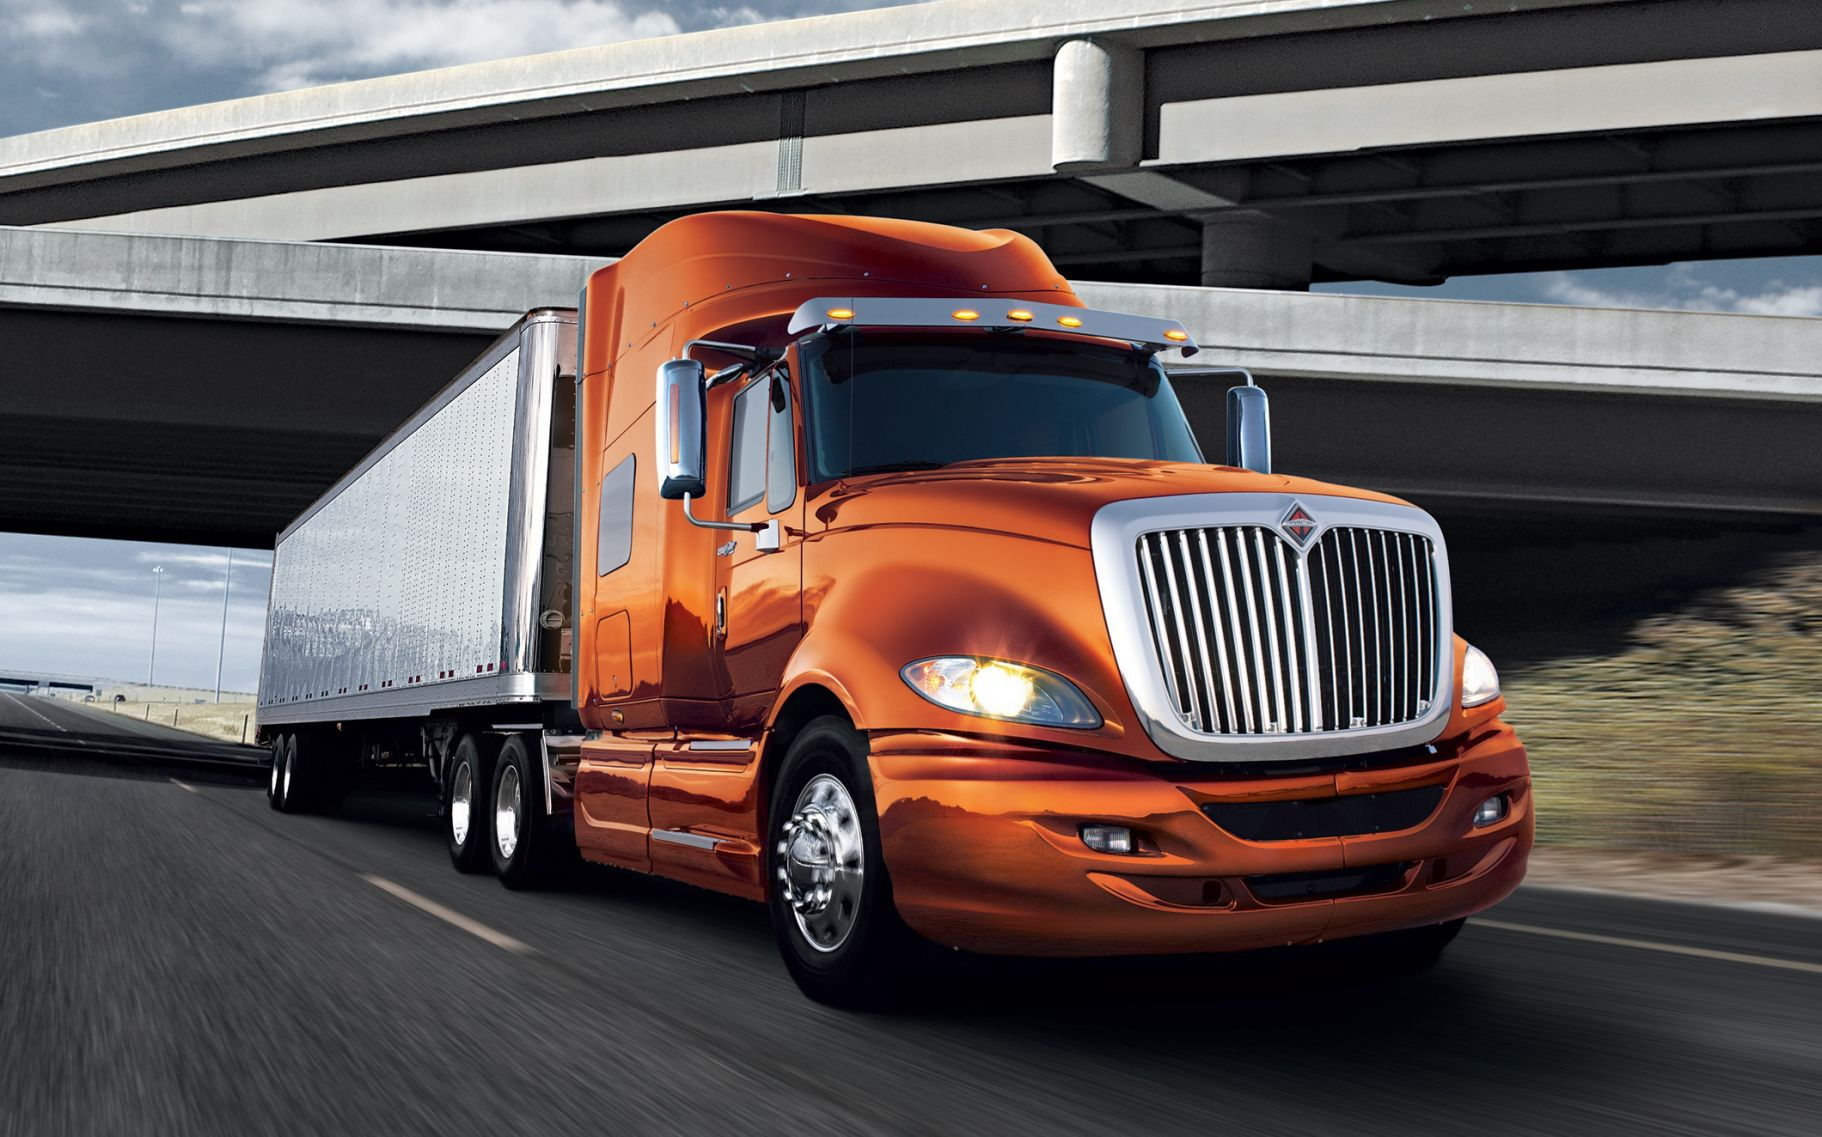 Volkswagen Truck & Bus buying stake in Navistar for $256M